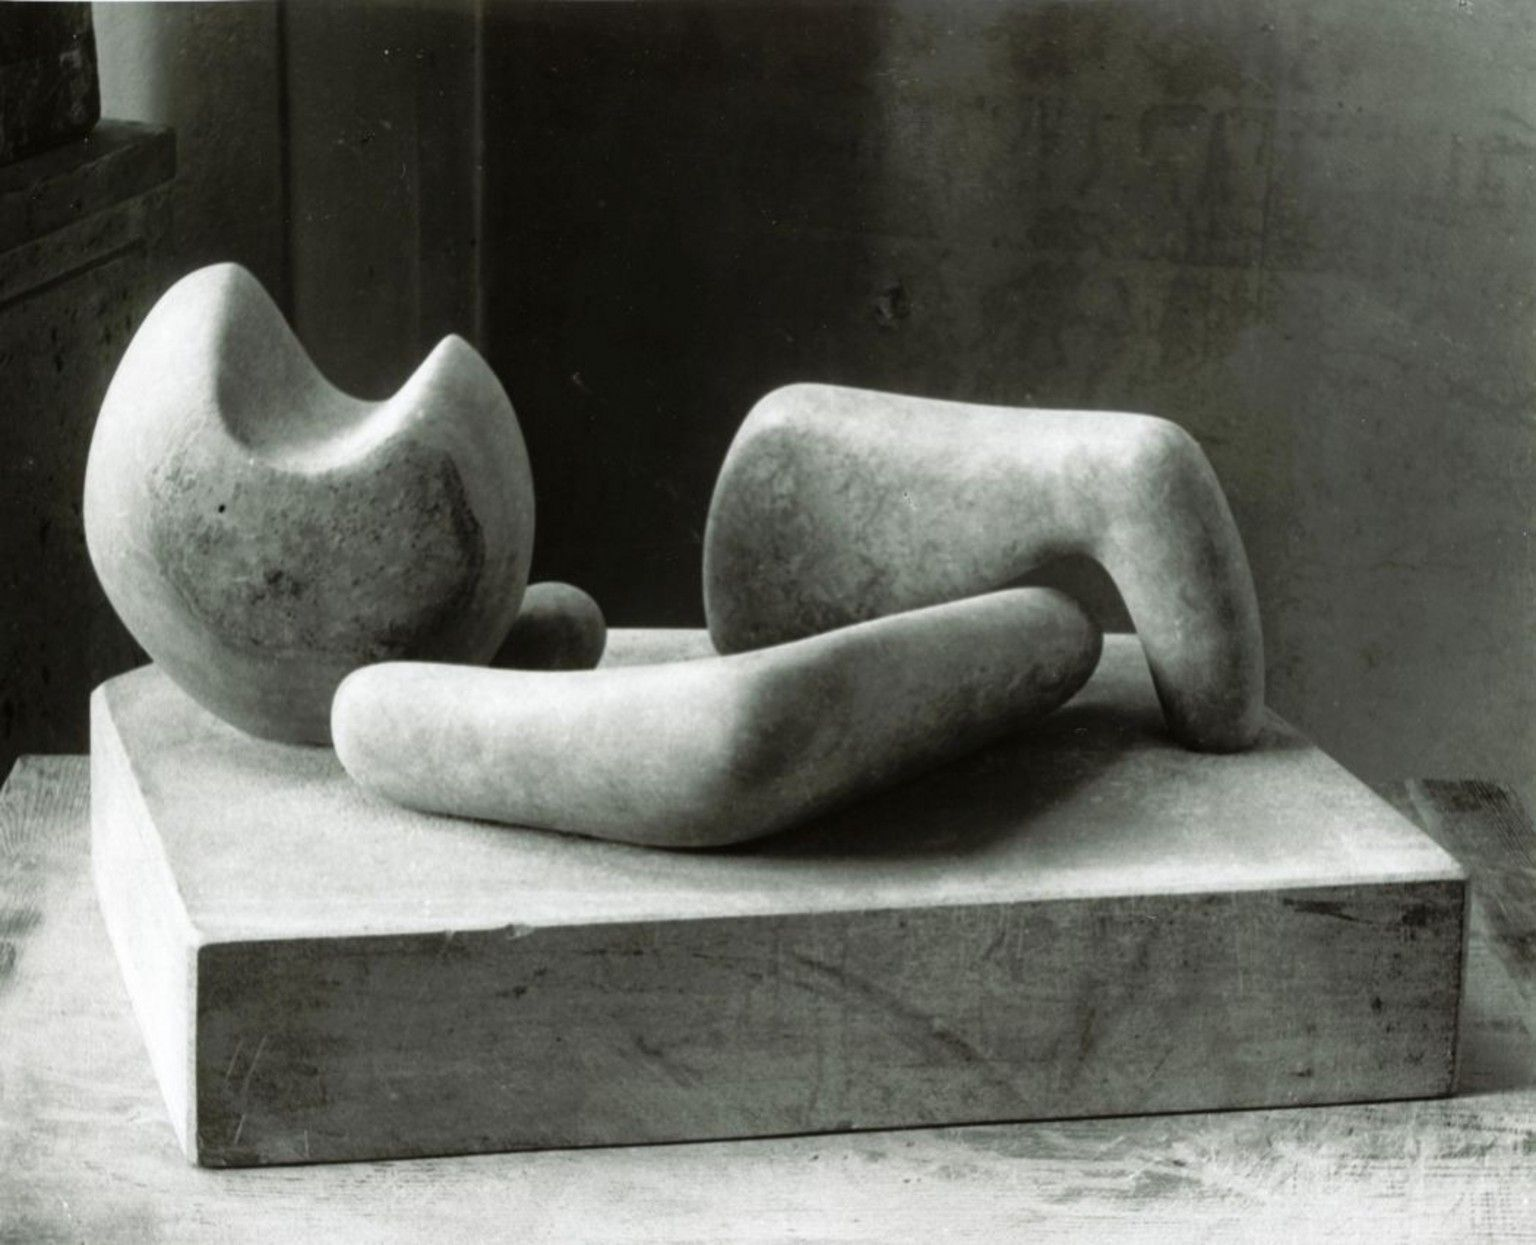 Henry Moore Four-Piece Composition Reclining Figure 1934 photograph taken c.1934 & Henry Moore Four-Piece Composition: Reclining Figure 1934 ... islam-shia.org